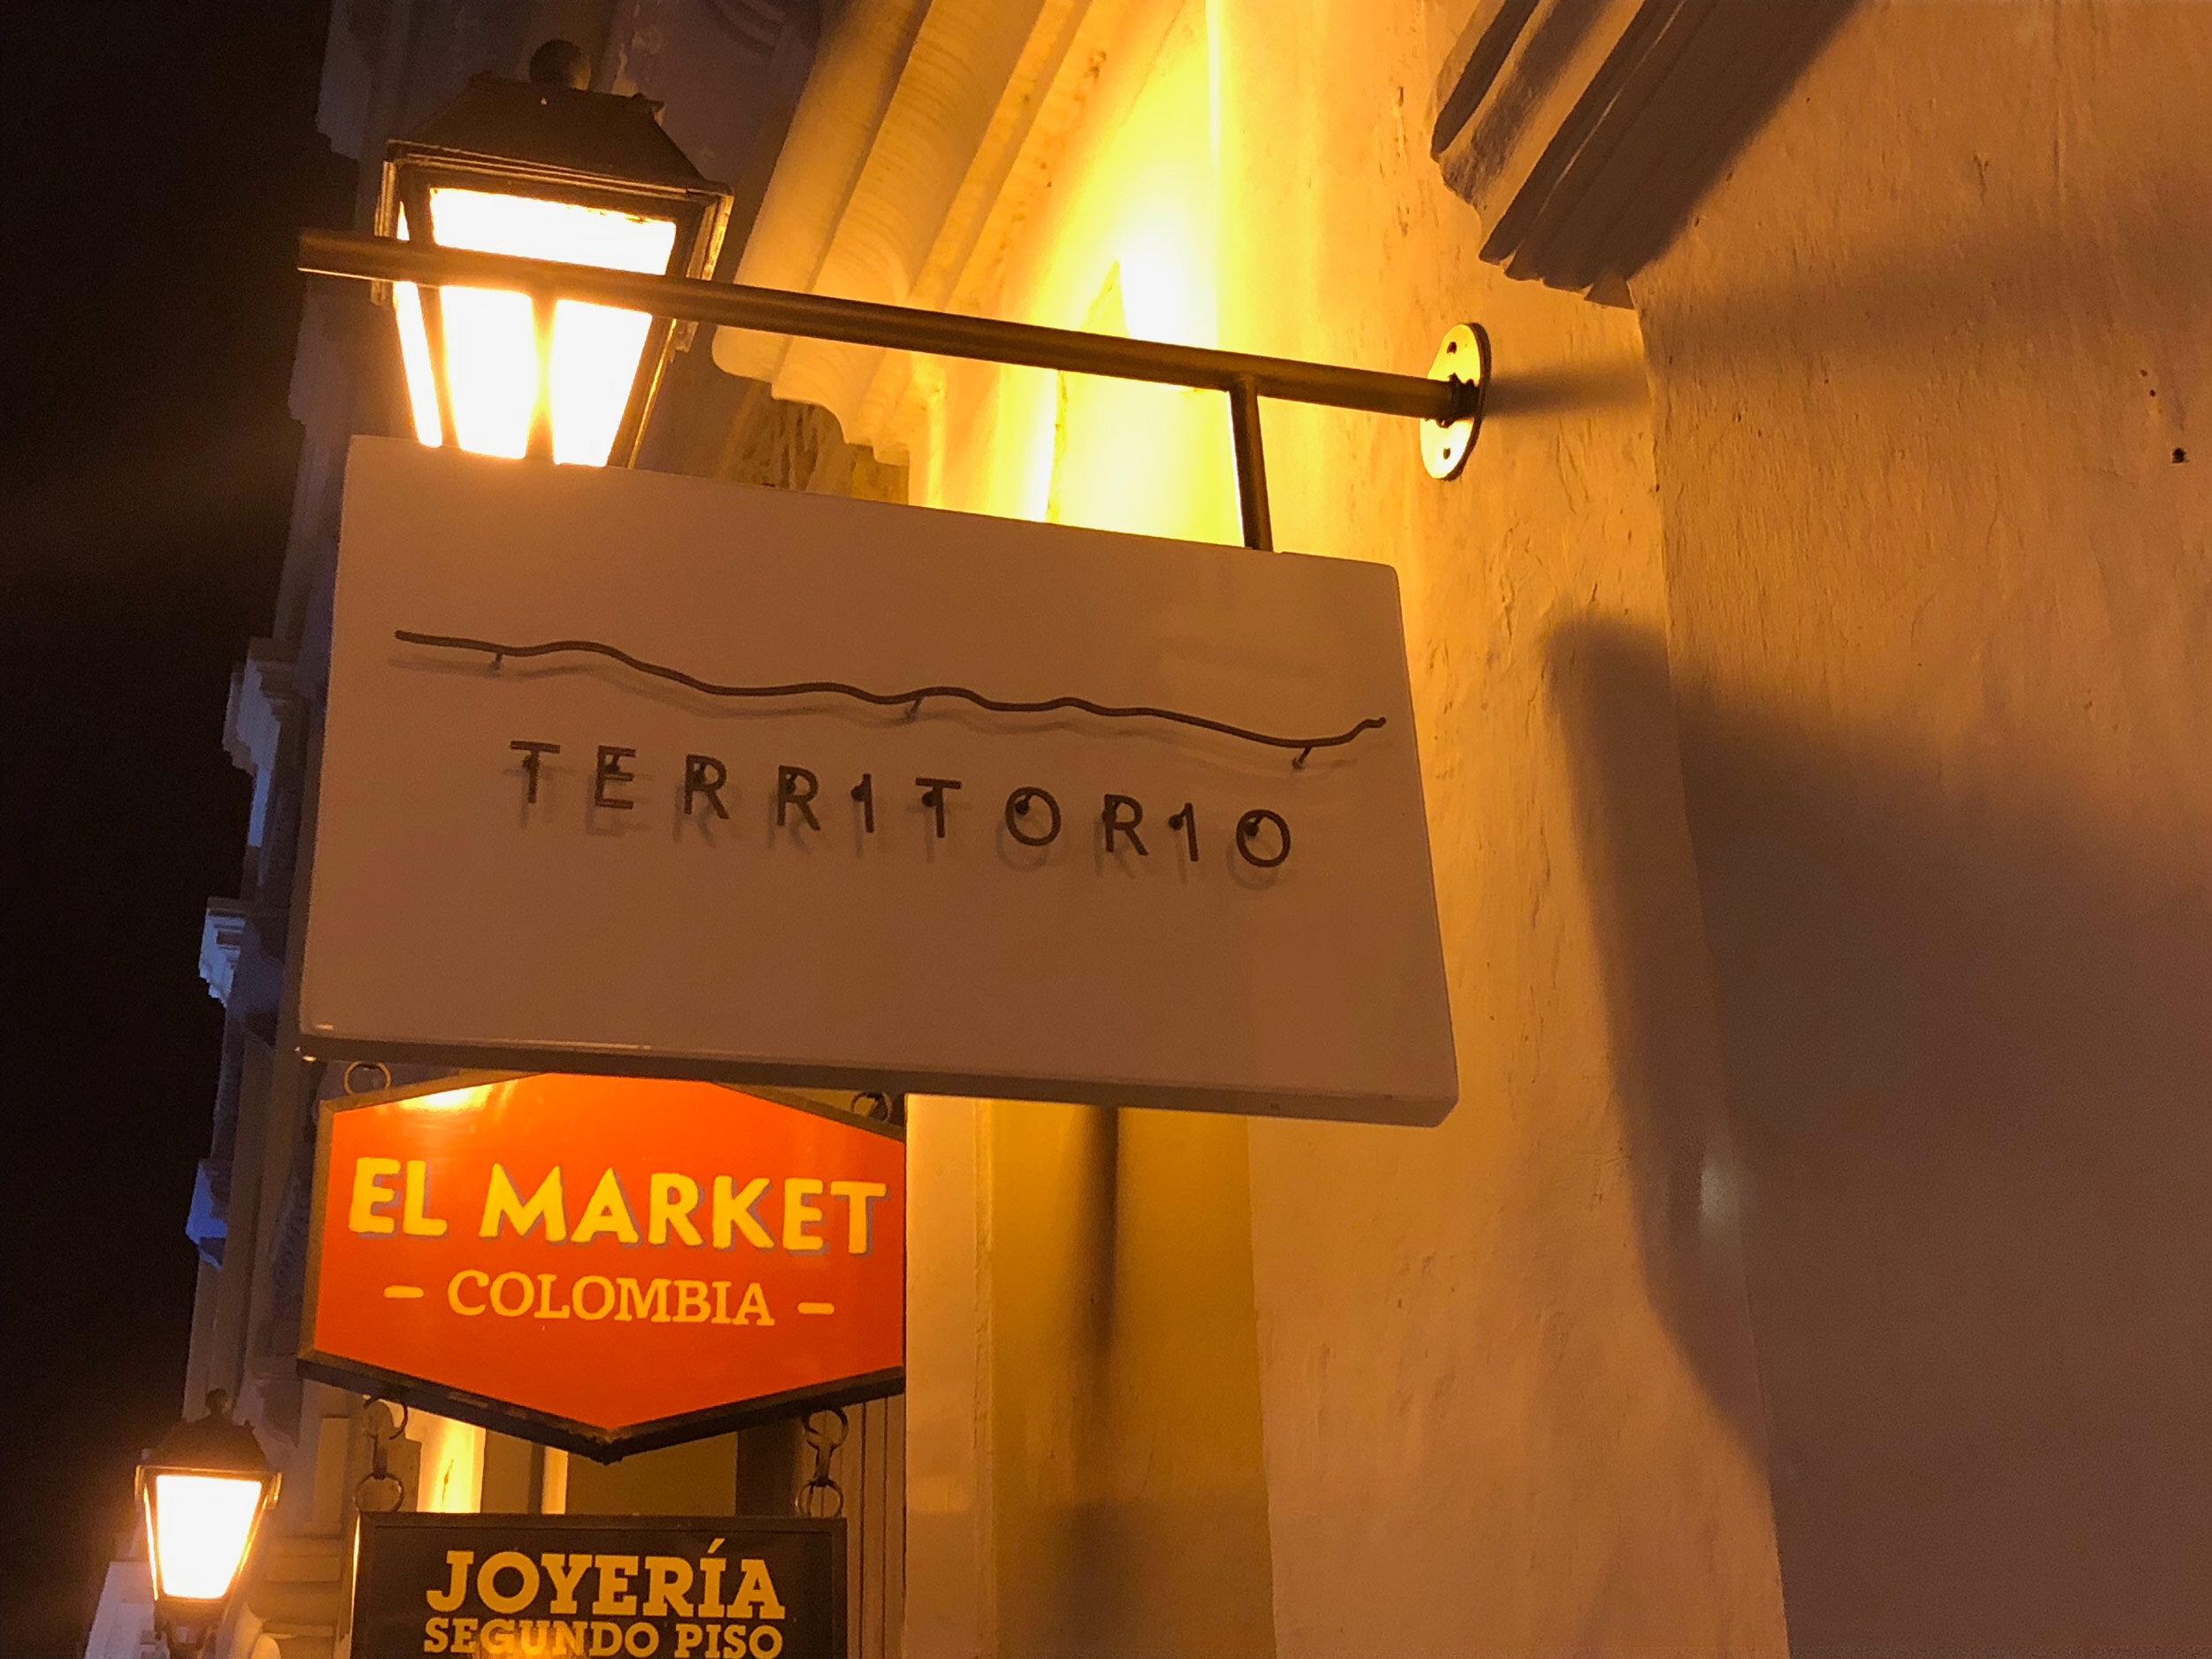 Territorio has three locations in El Centro. Two have high-end handcrafted items and one has beautifully intricate hand-made woven bracelets.